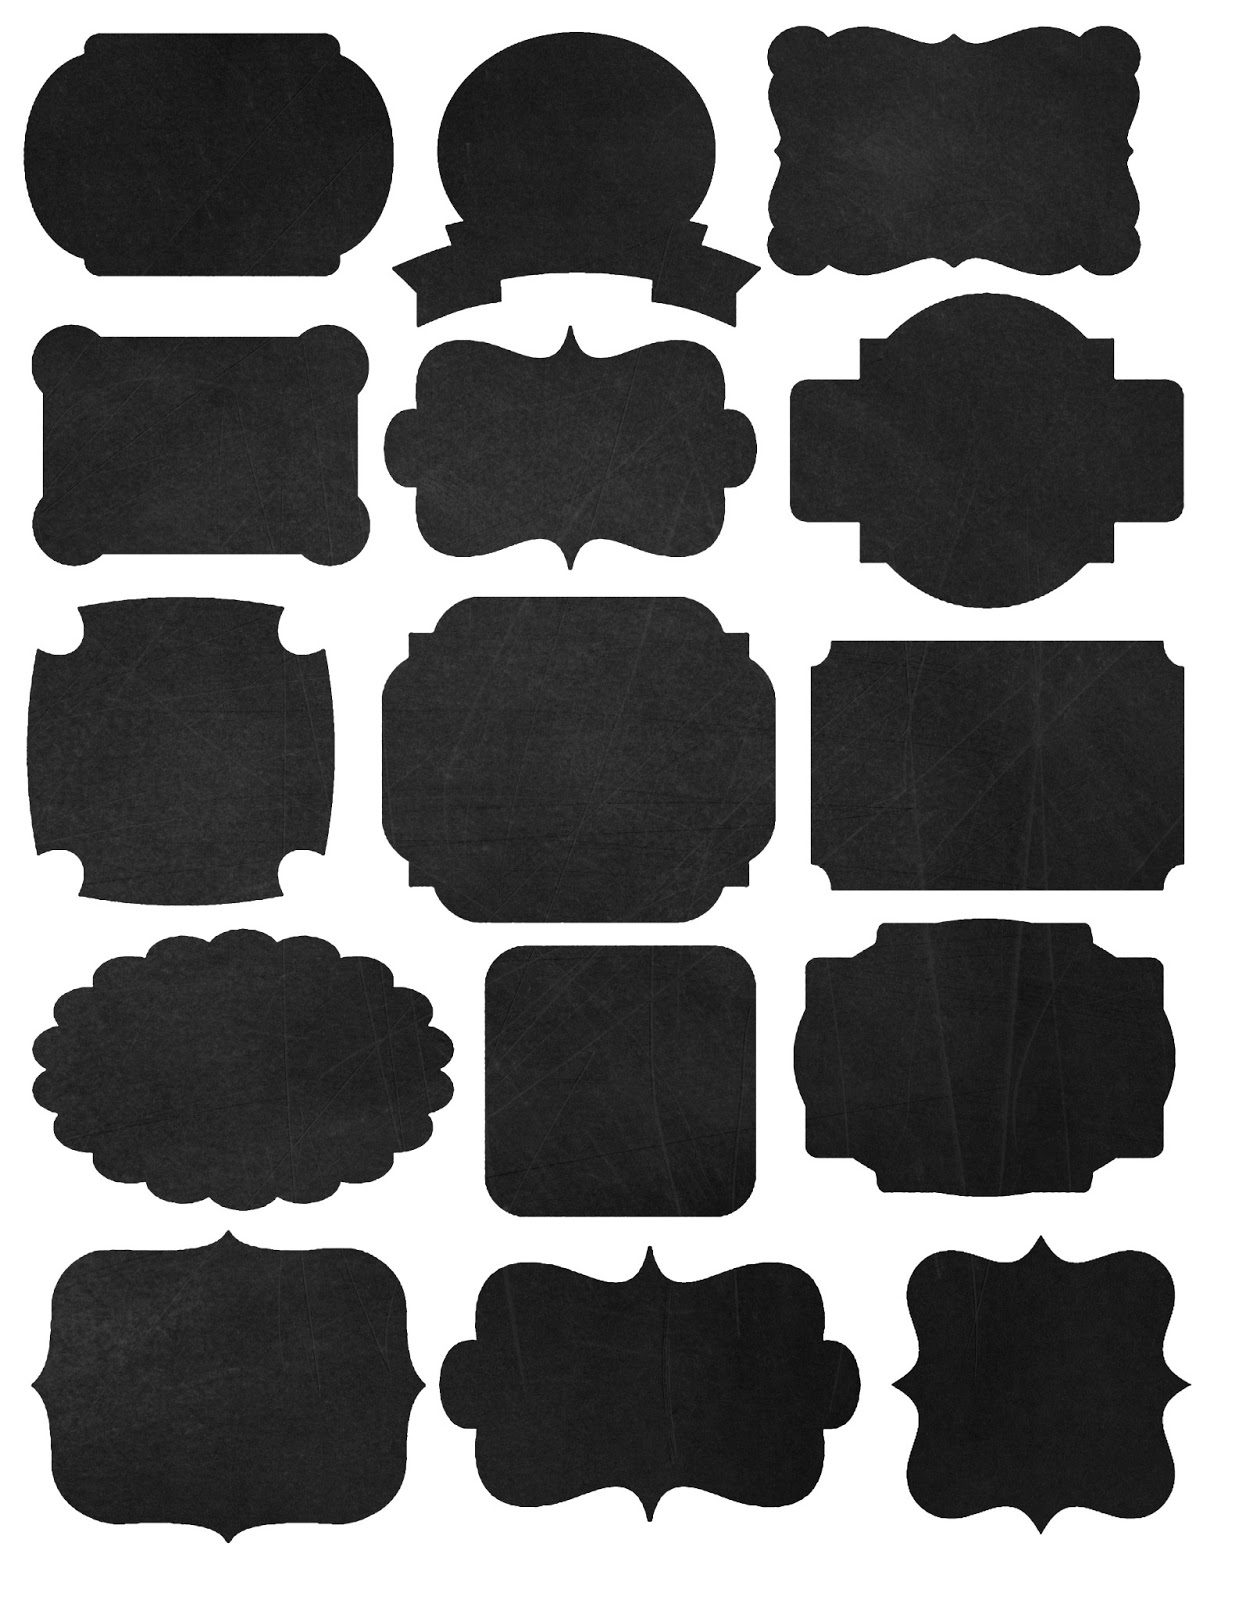 doodlecraft freebies printables labels and chalkboard fonts With black labels for printing